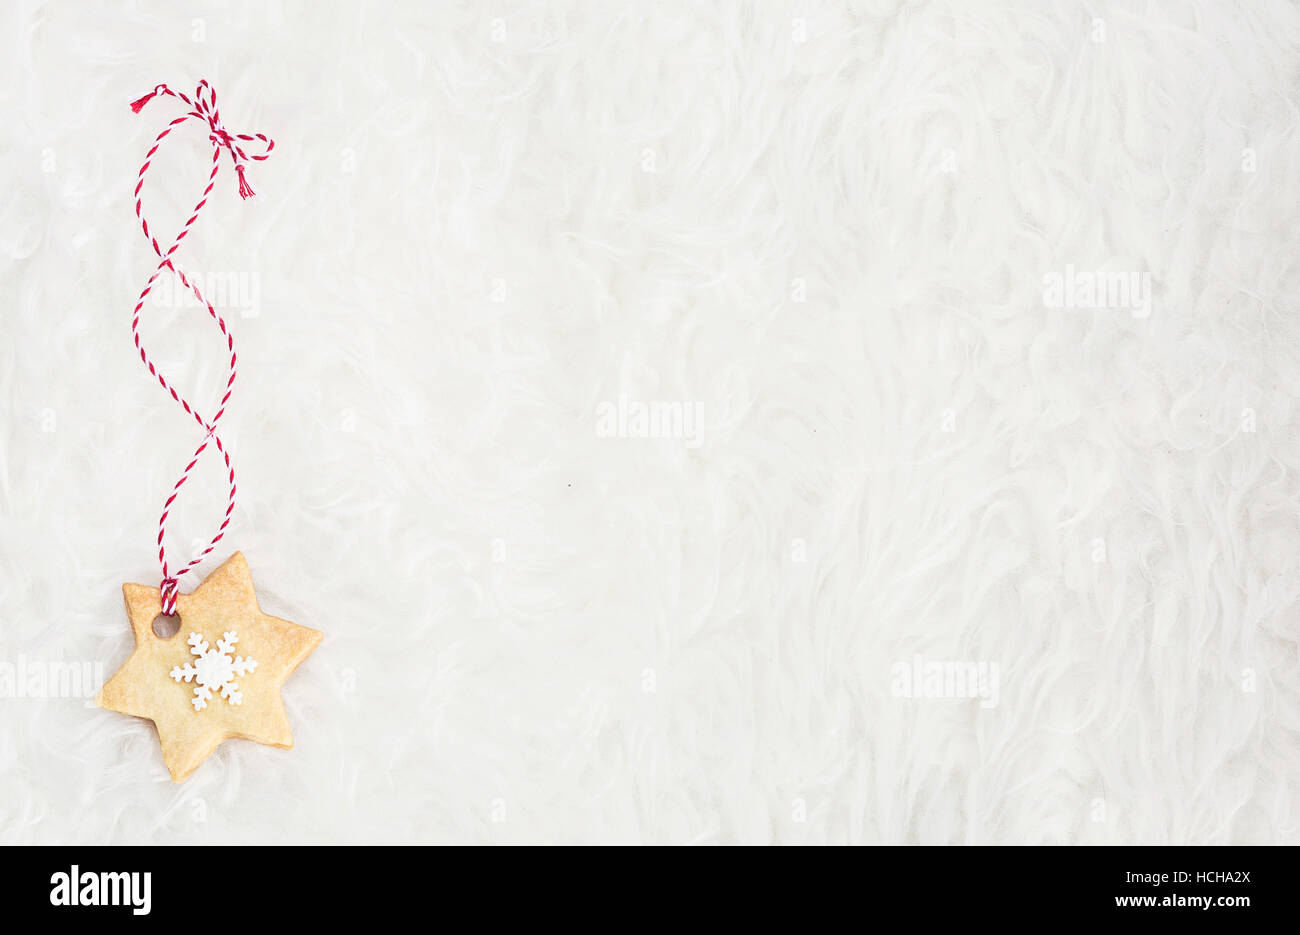 Christmas biscuit on white background - Stock Image